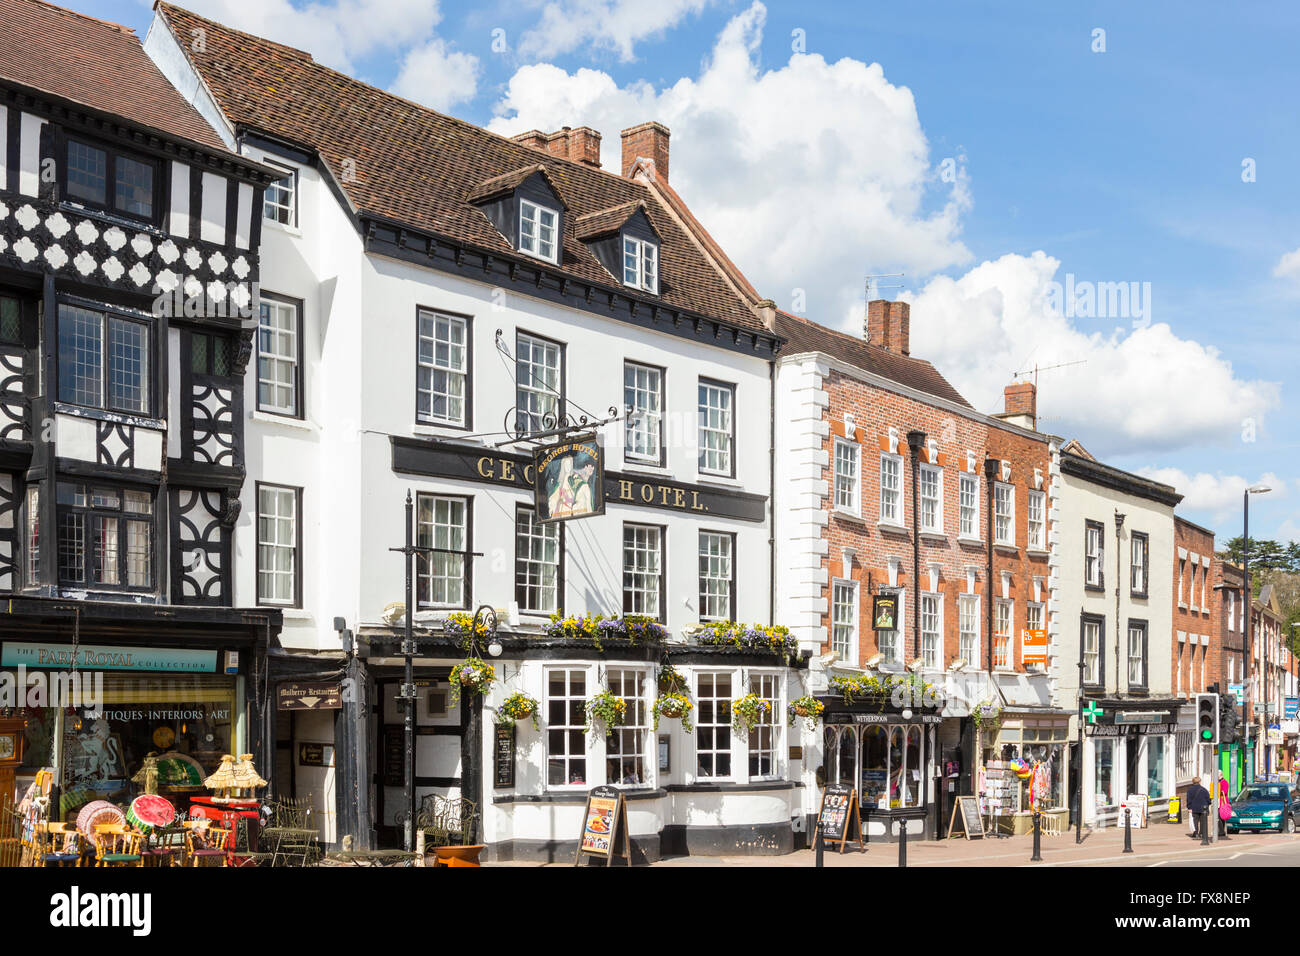 Load Street and it's historic buildings in the riverside town of Bewdley, Worcestershire, England, UK - Stock Image